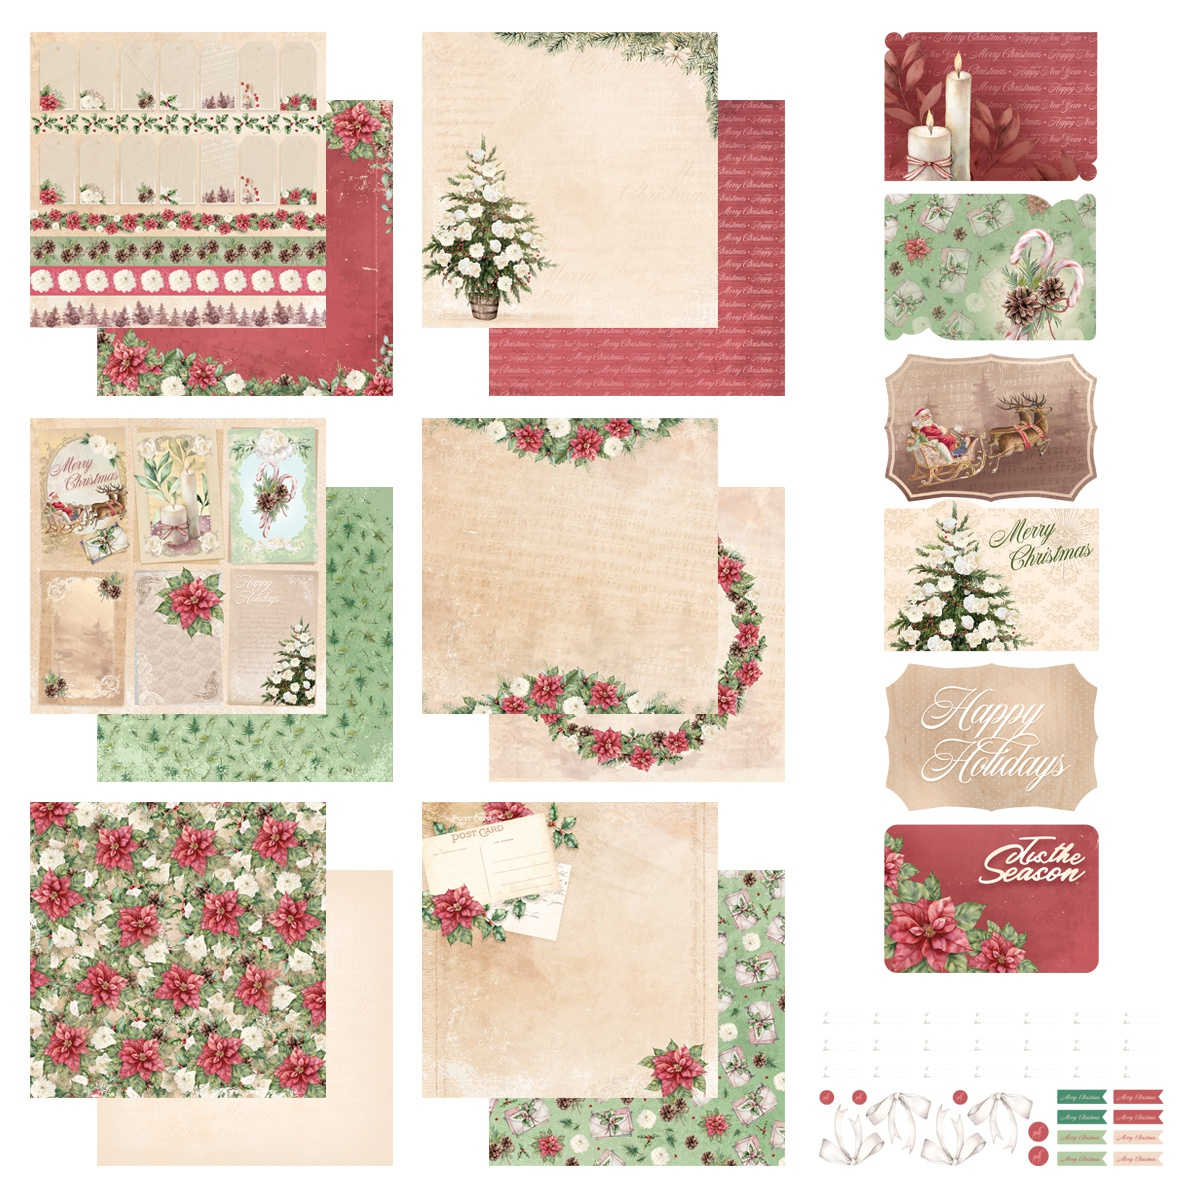 Couture Creations The Gift Of Giving 12X12 Collection-Stickers, Postcards & Pa...